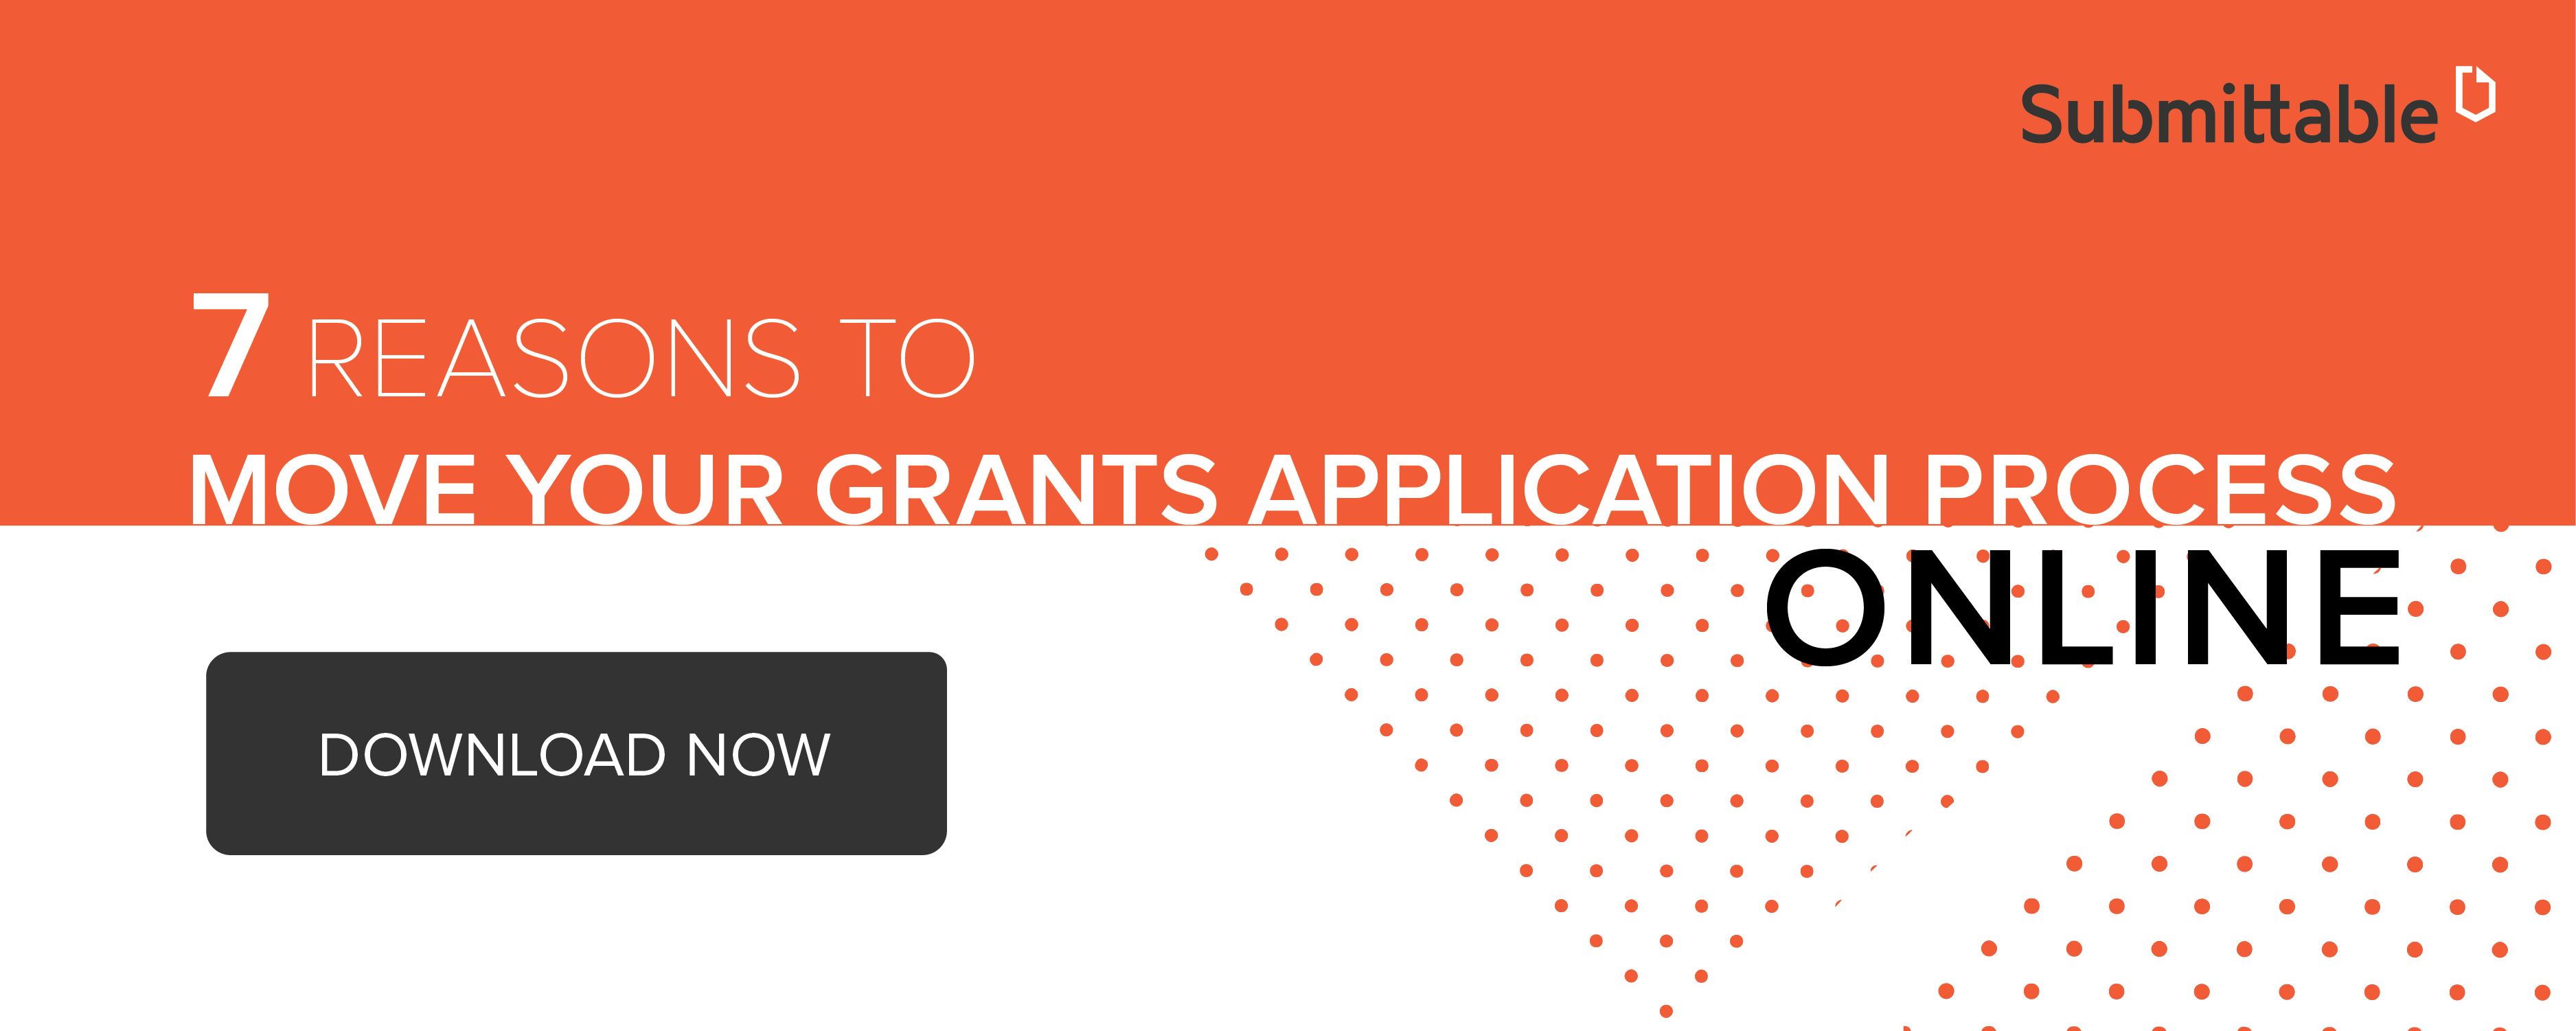 reasons to move your grants application process online